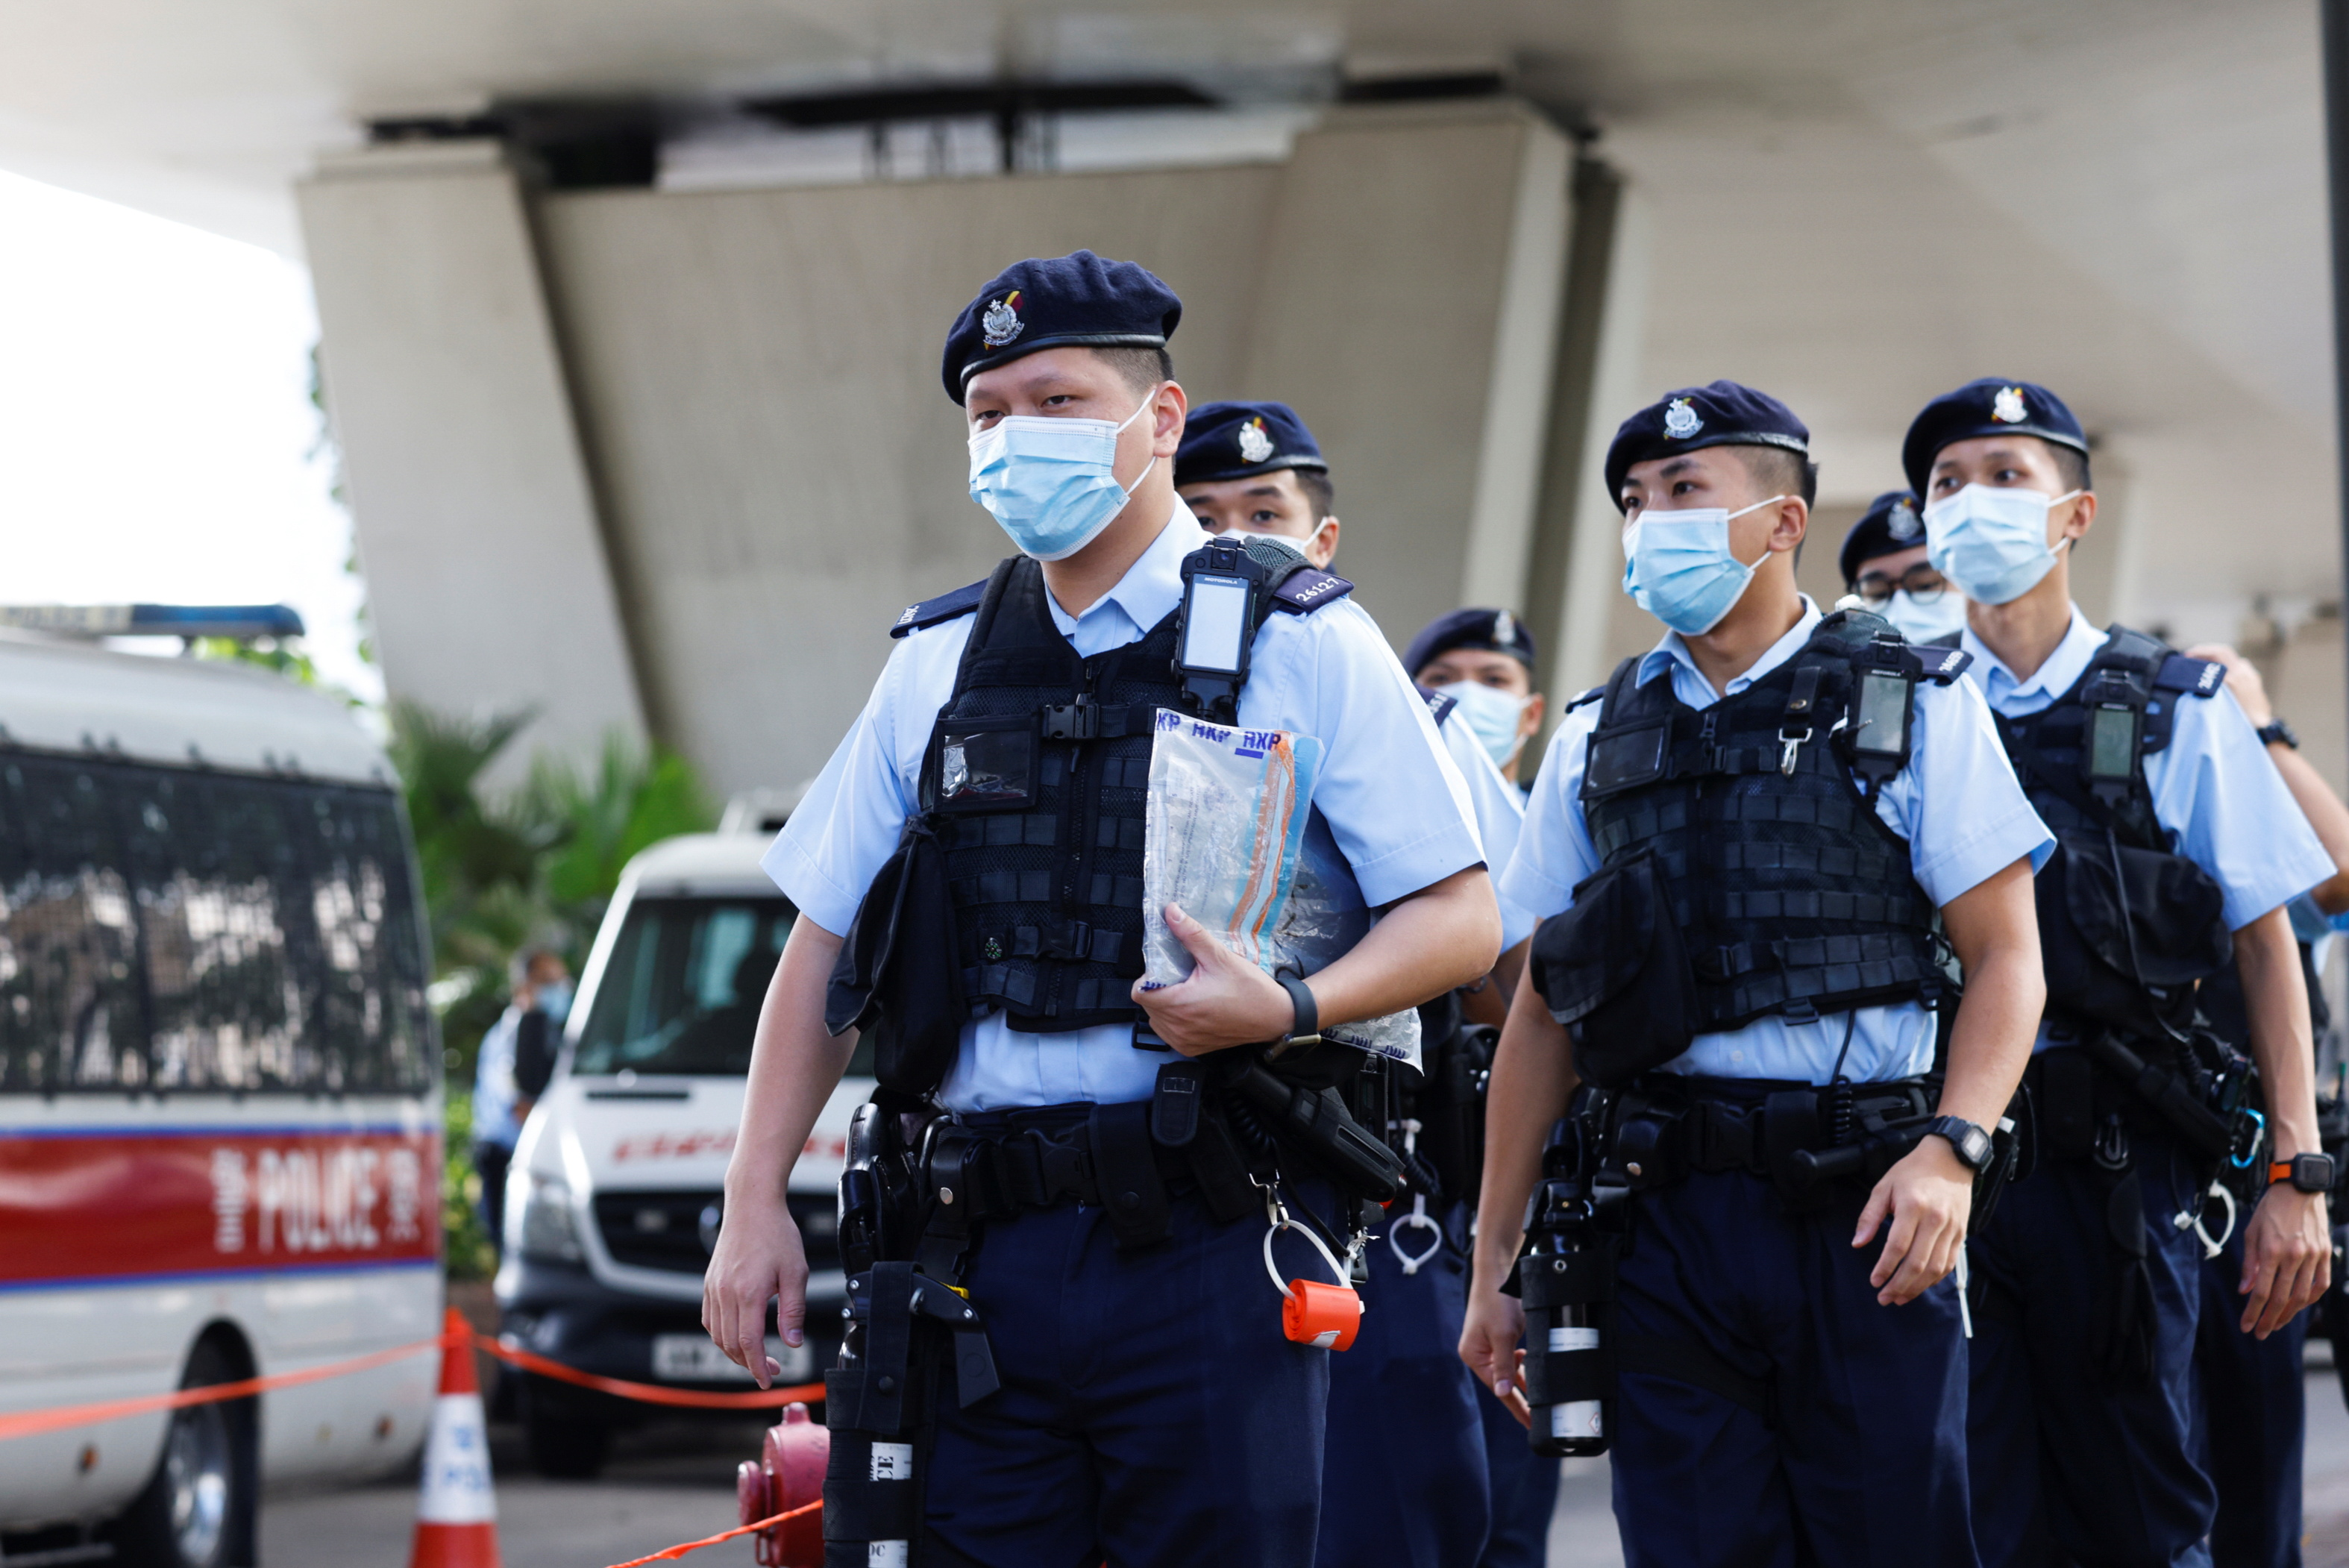 Police patrol outside the West Kowloon Magistrates' Courts building where a court hearing is taking place for Lam Man-chung, the former executive editor-in-chief of the now closed pro-democracy newspaper Apple Daily, in Hong Kong, China July 22, 2021. REUTERS/Tyrone Siu